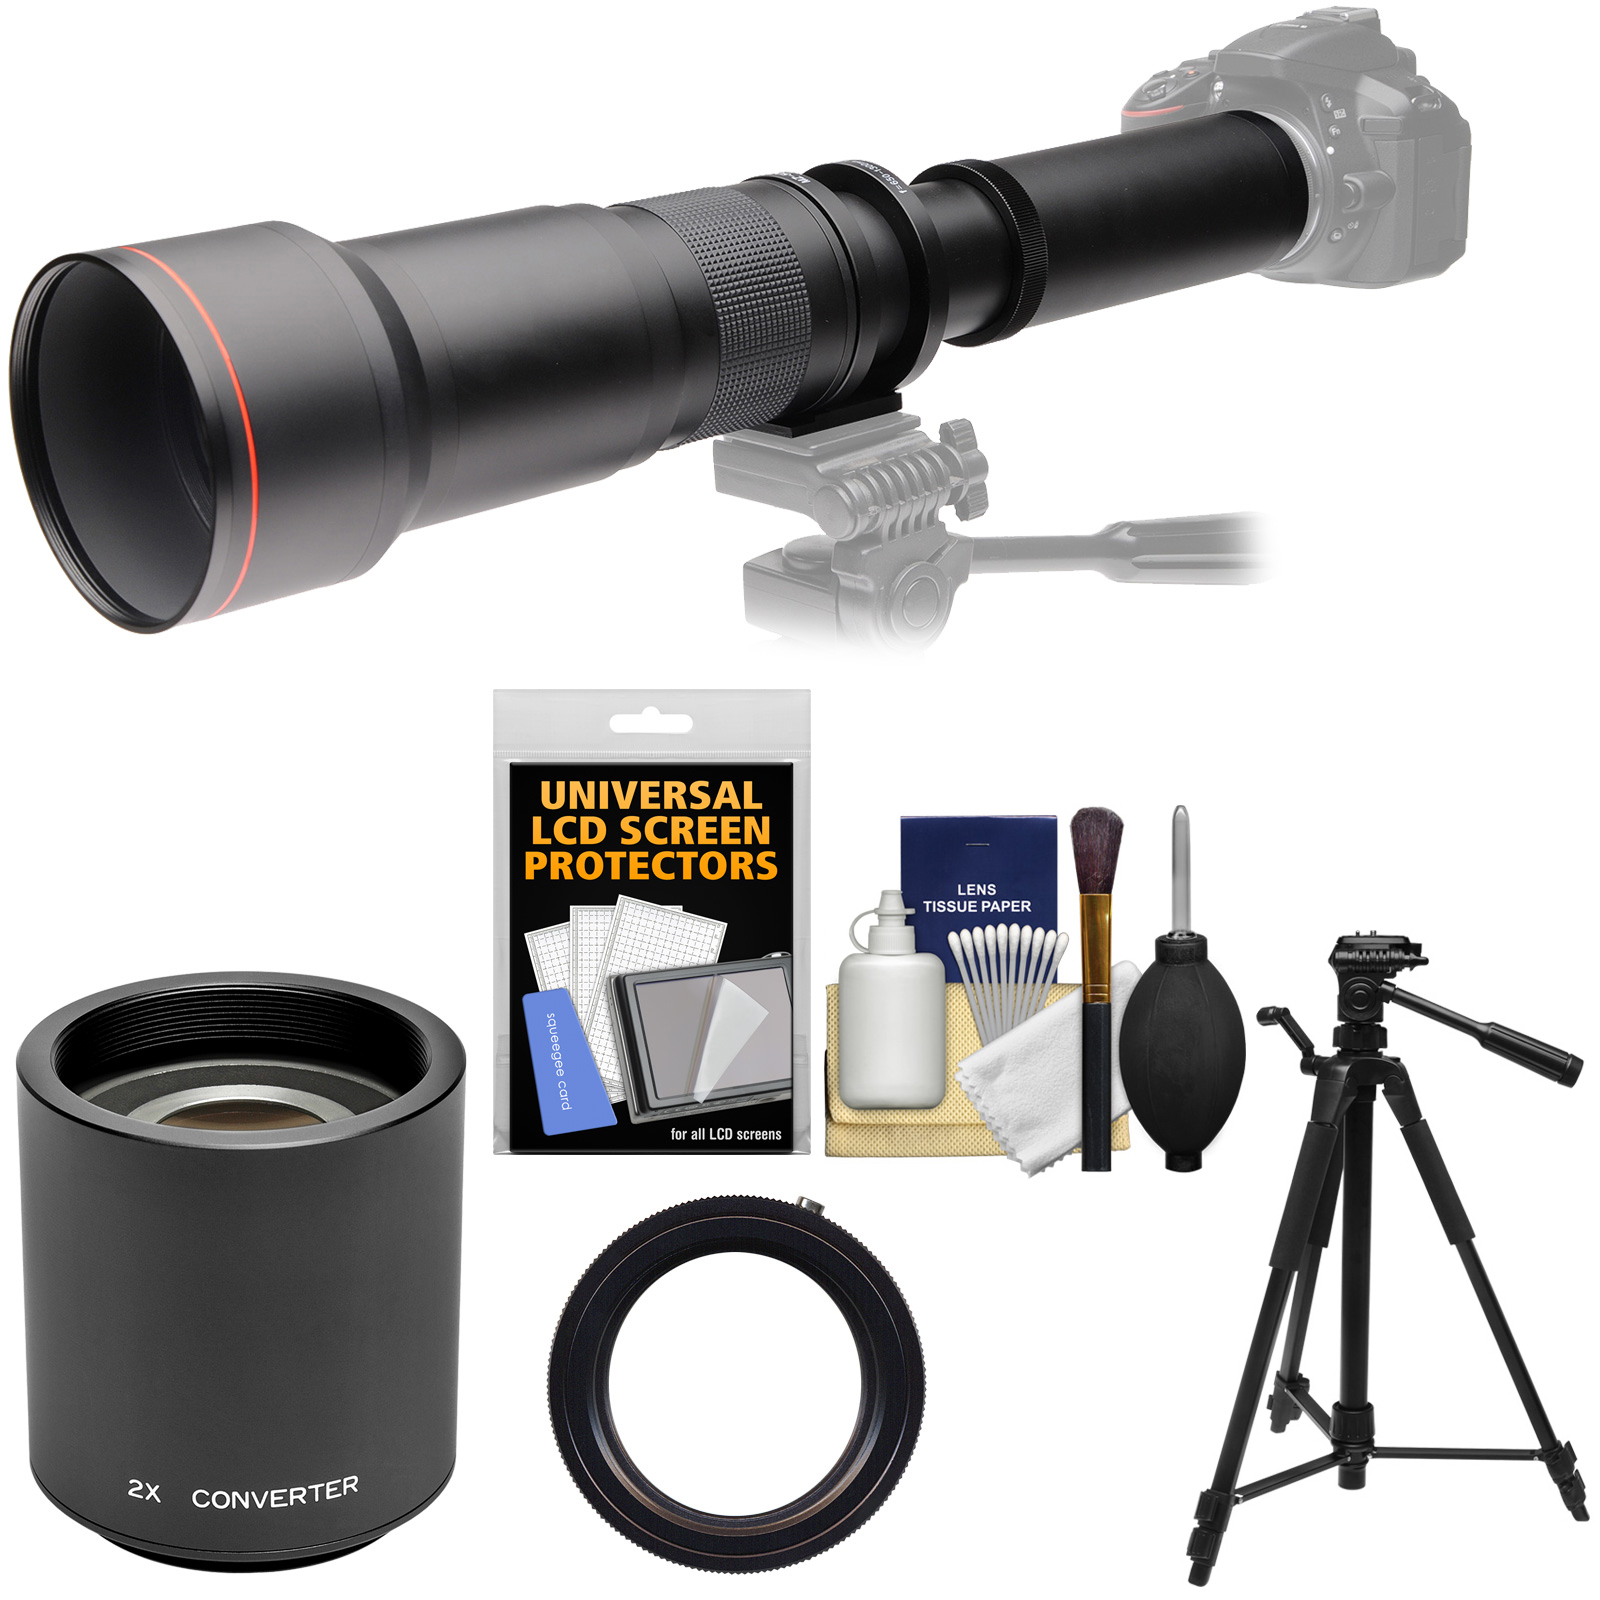 Vivitar 650-1300mm f/8-16 Telephoto Lens with 2x Teleconverter (=2600mm) + Tripod + Kit for Canon EOS Rebel SL1, T3, T3i, T5, T5i, 70D, 6D, 7D 5D Mark II III Camera